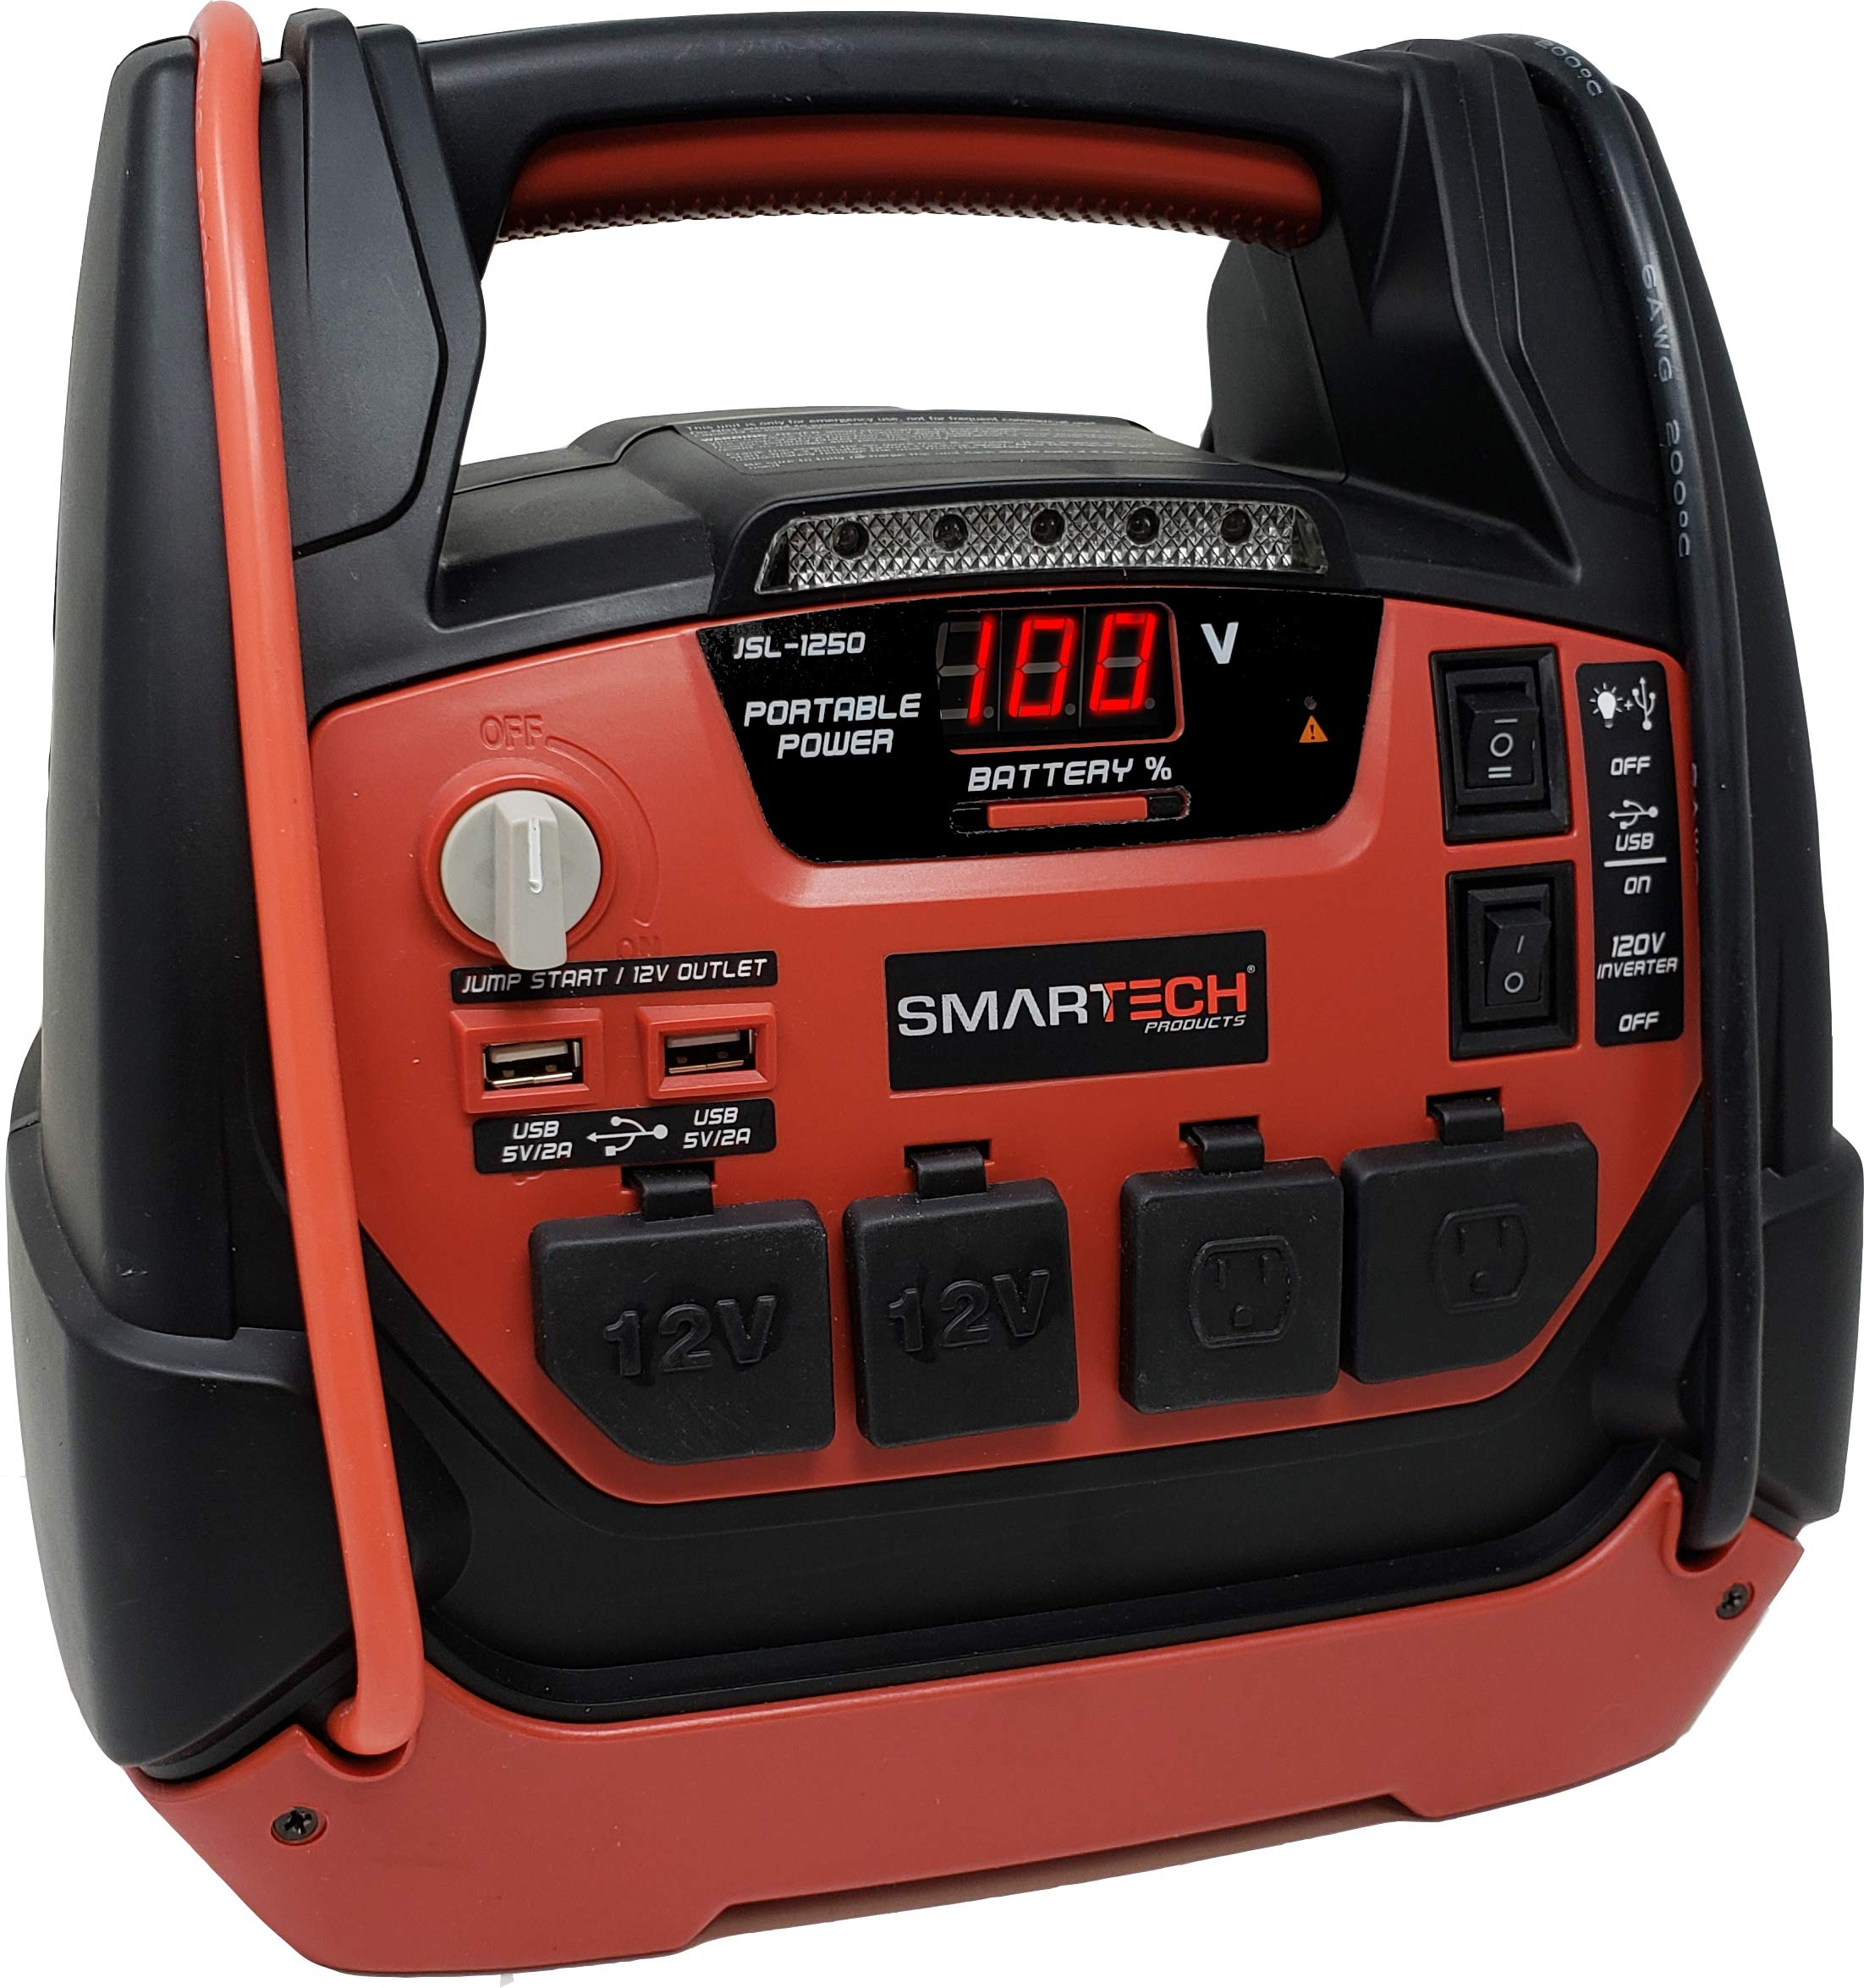 """Smartech JSL-1250 Power Station with Jump Starter & 150 PSI Air Compressor, 1250 Amp Starting Power, Two AC & Two DC Plug-Ins for 12V & 120V, Two USB Ports, 24"""" Jumper Cables, Built-In LED Work Light"""